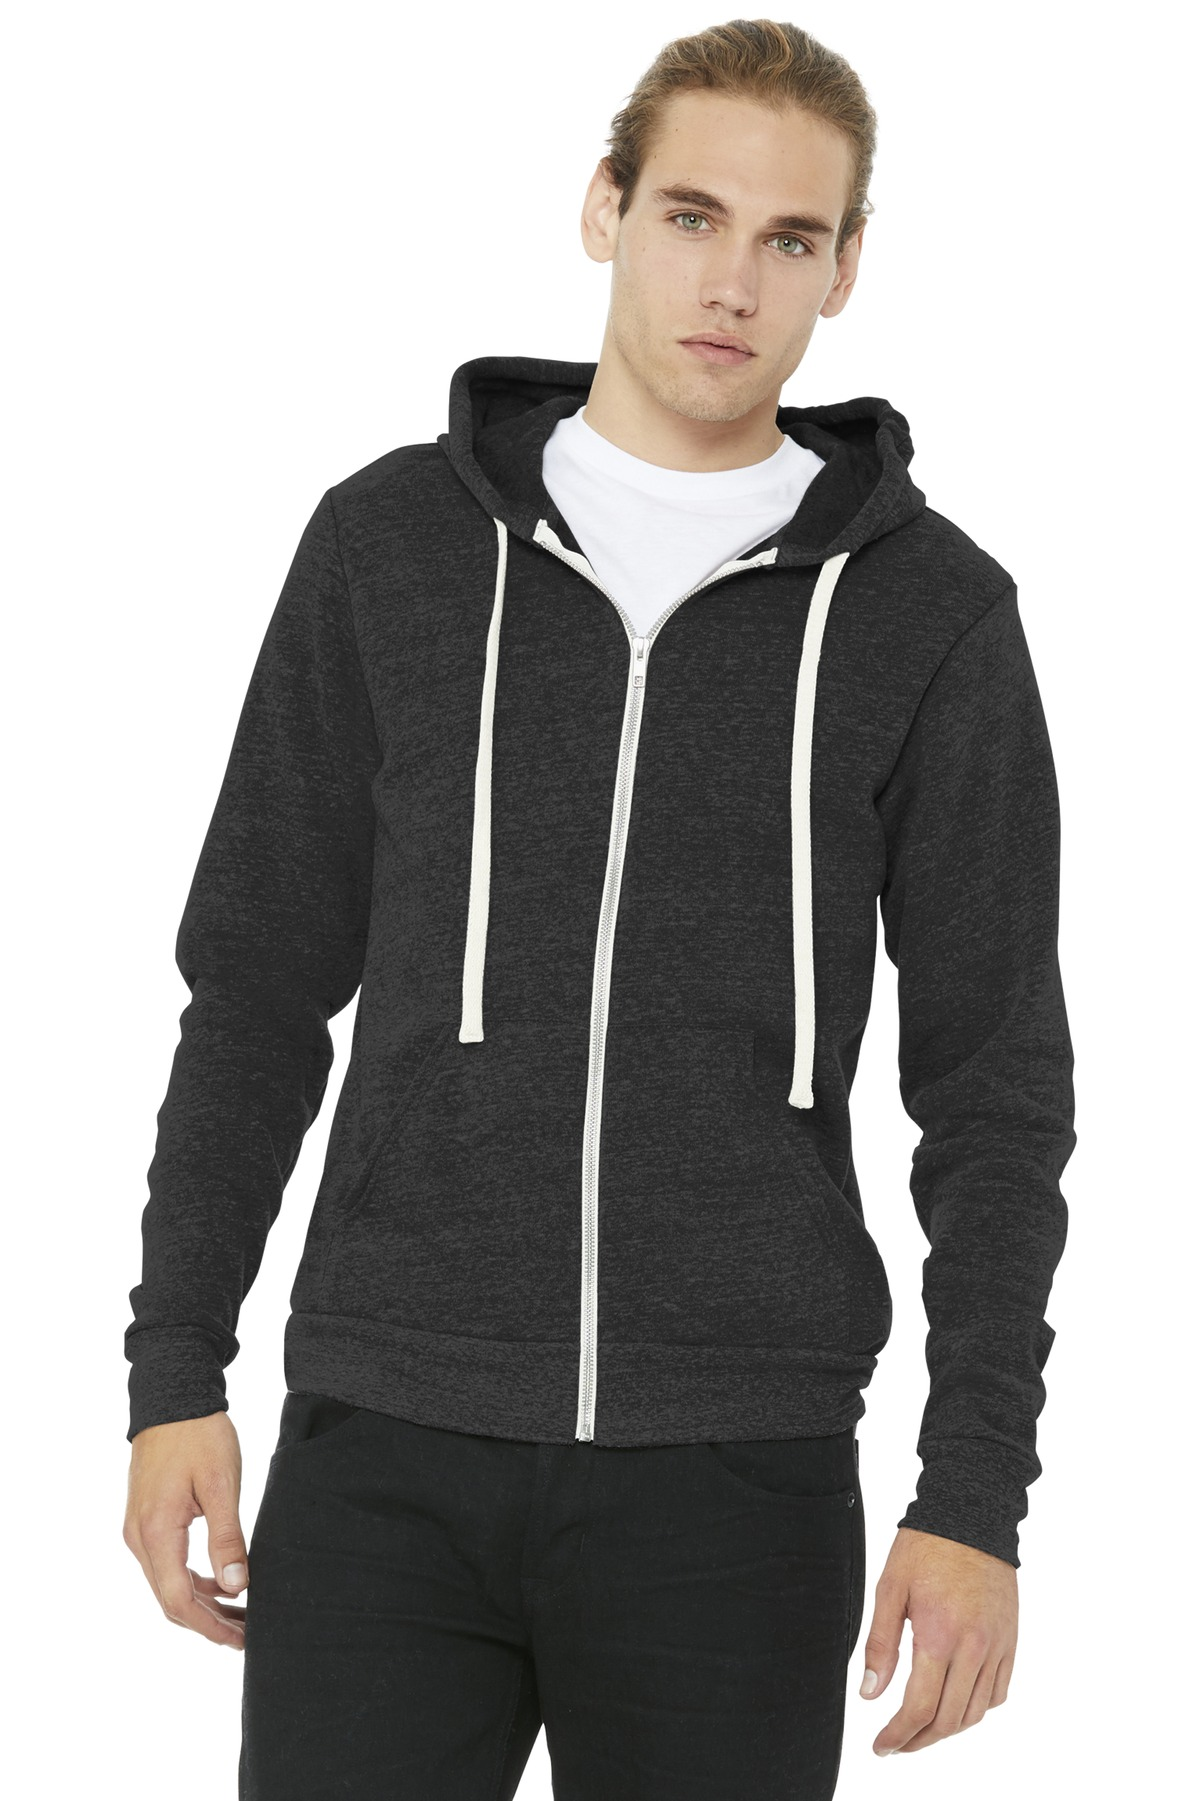 BELLA+CANVAS  ®  Unisex Triblend Sponge Fleece Full-Zip Hoodie. BC3909 - Charcoal-Black Triblend